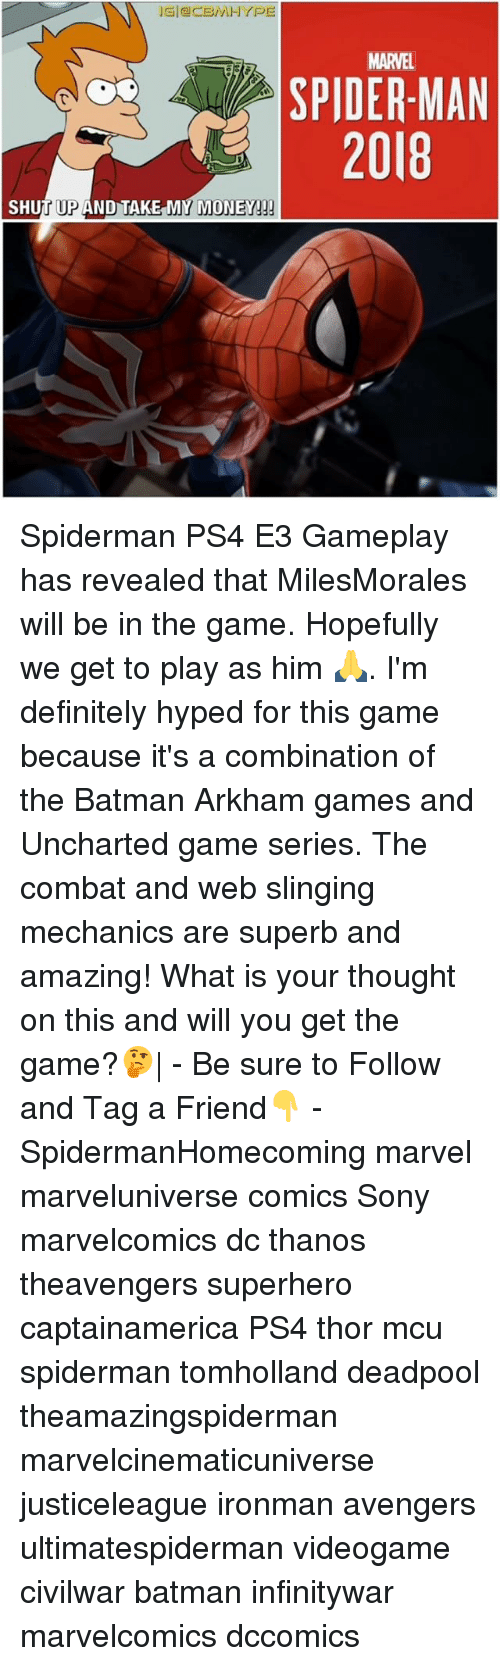 Combate: MARVEL  SPIDER-MAN  2018  SHUT UP AND TAKE MY MONEY! Spiderman PS4 E3 Gameplay has revealed that MilesMorales will be in the game. Hopefully we get to play as him 🙏. I'm definitely hyped for this game because it's a combination of the Batman Arkham games and Uncharted game series. The combat and web slinging mechanics are superb and amazing! What is your thought on this and will you get the game?🤔| - Be sure to Follow and Tag a Friend👇 - SpidermanHomecoming marvel marveluniverse comics Sony marvelcomics dc thanos theavengers superhero captainamerica PS4 thor mcu spiderman tomholland deadpool theamazingspiderman marvelcinematicuniverse justiceleague ironman avengers ultimatespiderman videogame civilwar batman infinitywar marvelcomics dccomics